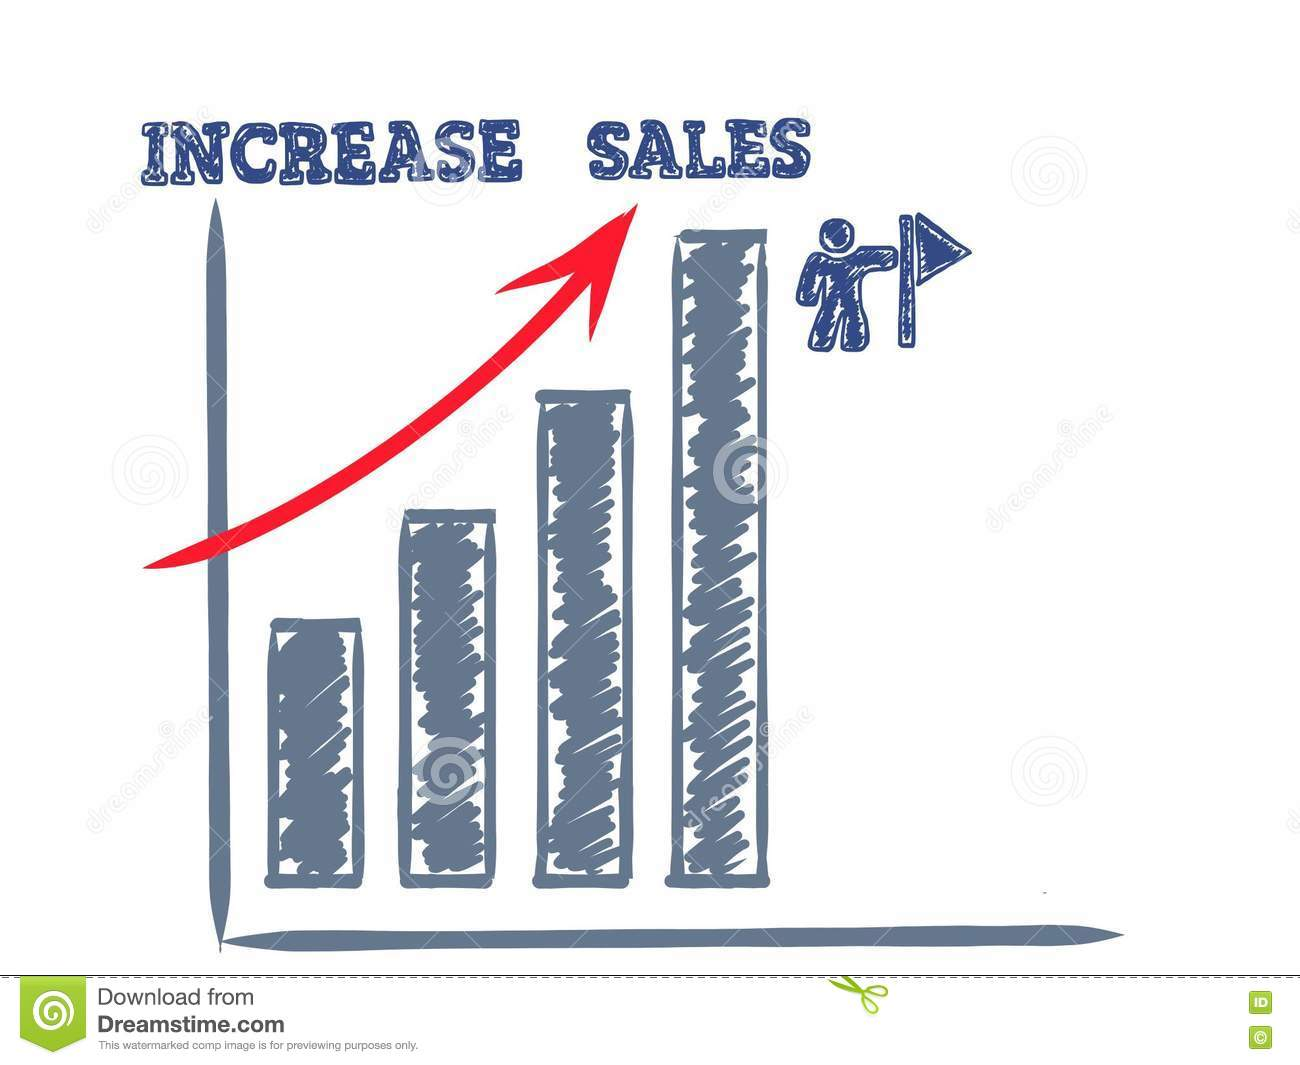 Increase sales and profit, business concept